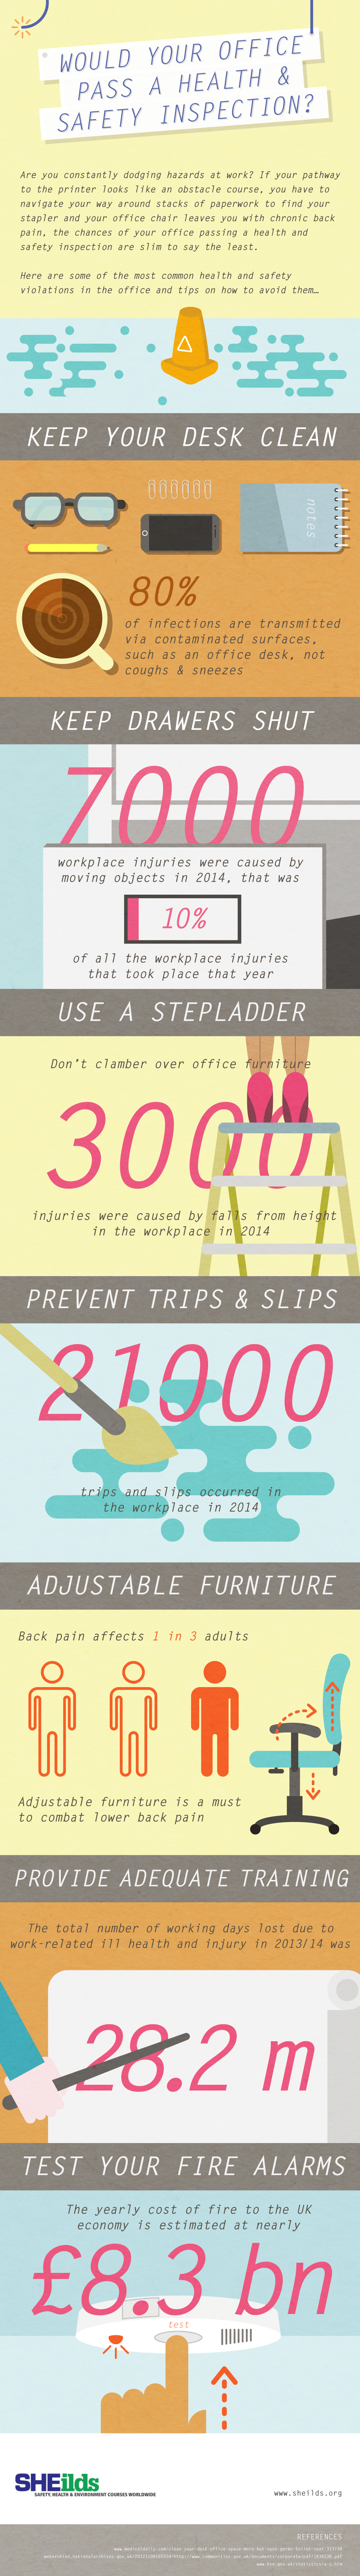 How Prone Is Your Office to Infections and Injuries? - Infographic